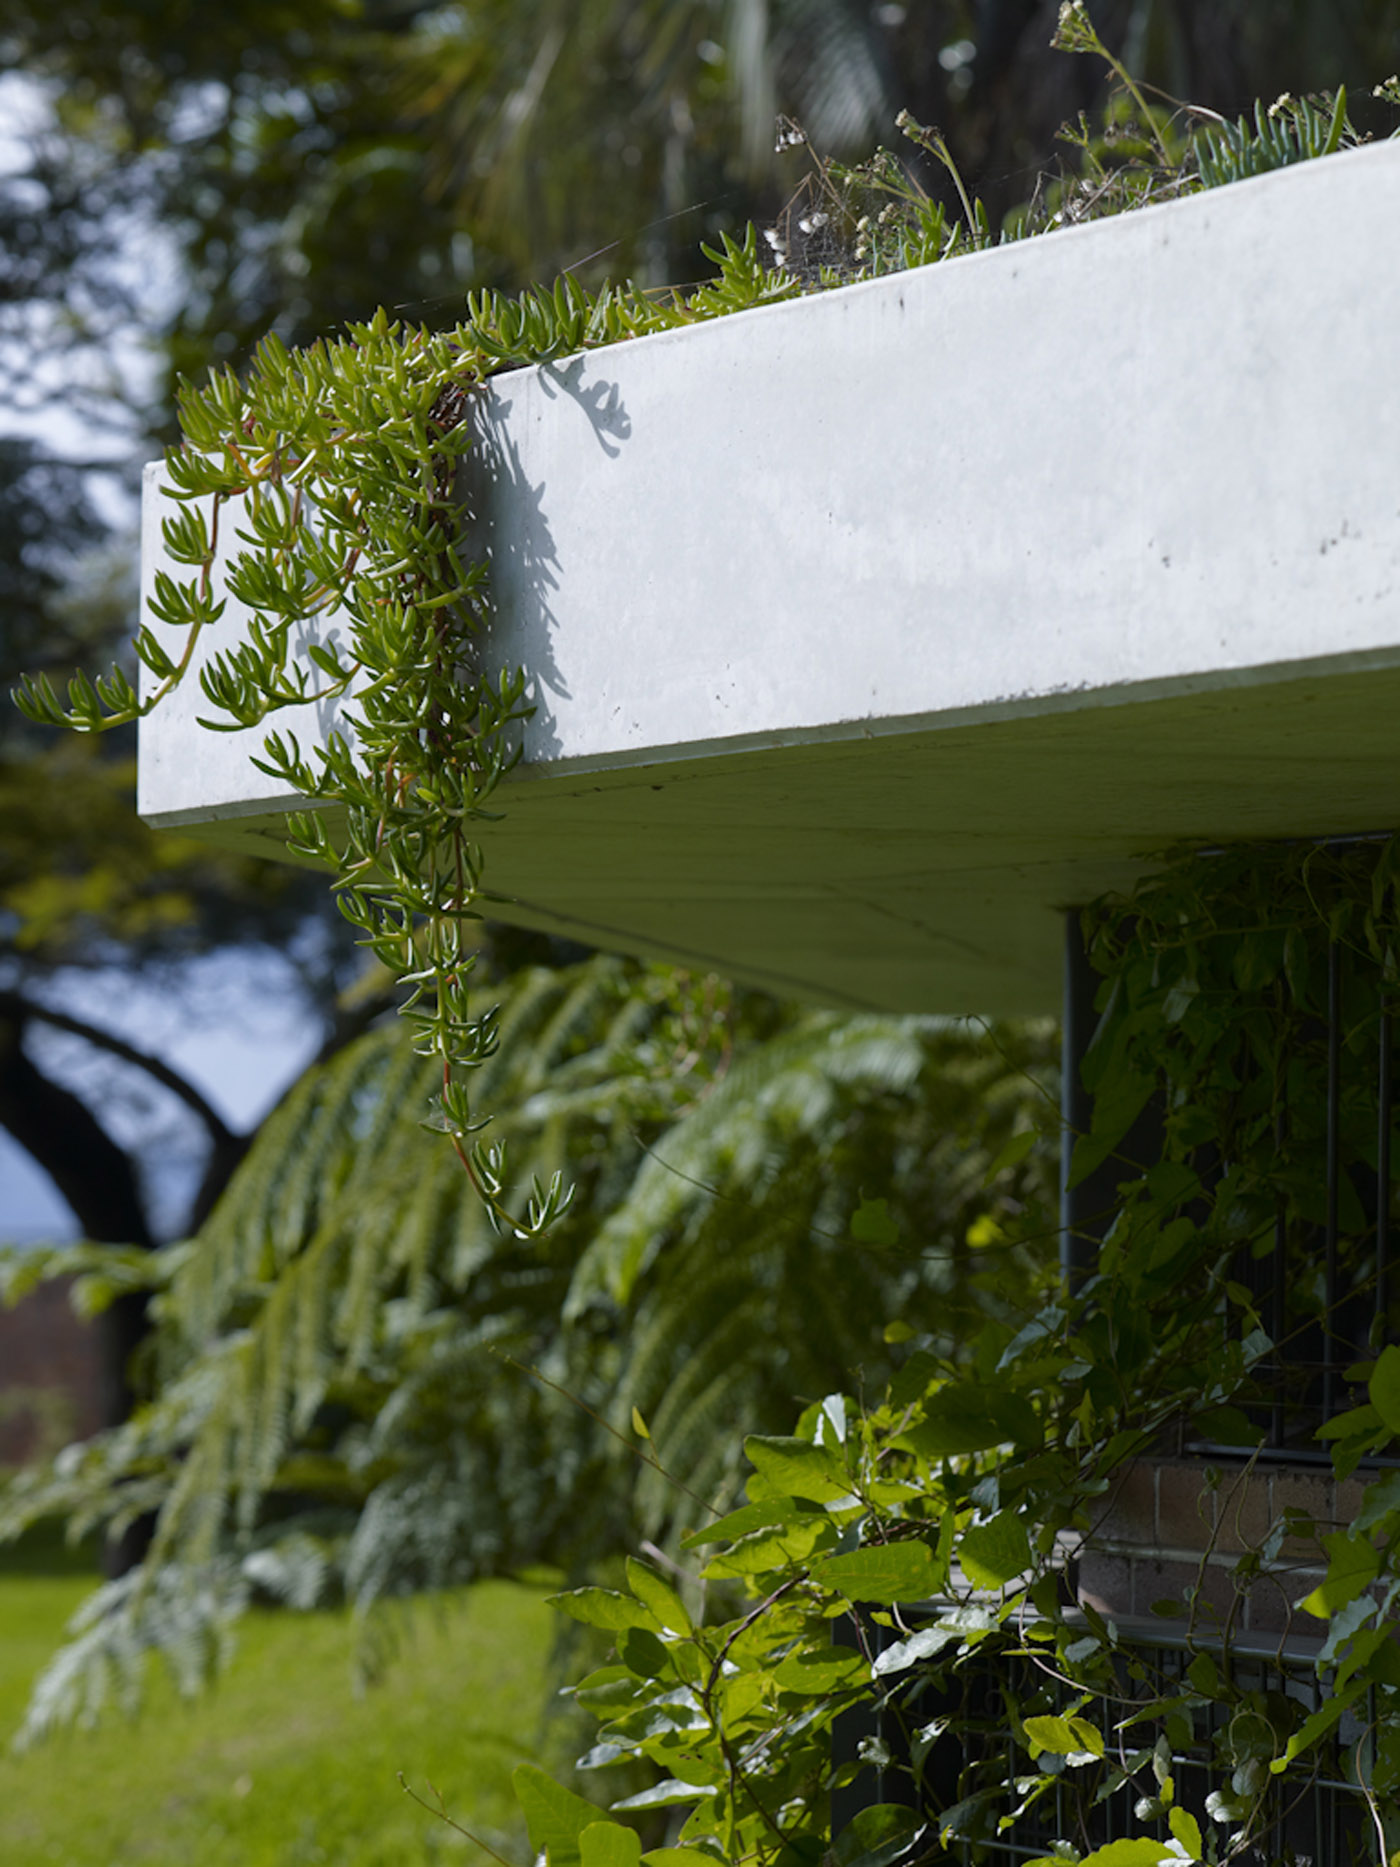 Beare Park Amenities by award winning Sydney public architecture firm Sam Crawford Architects. Detail of green roof